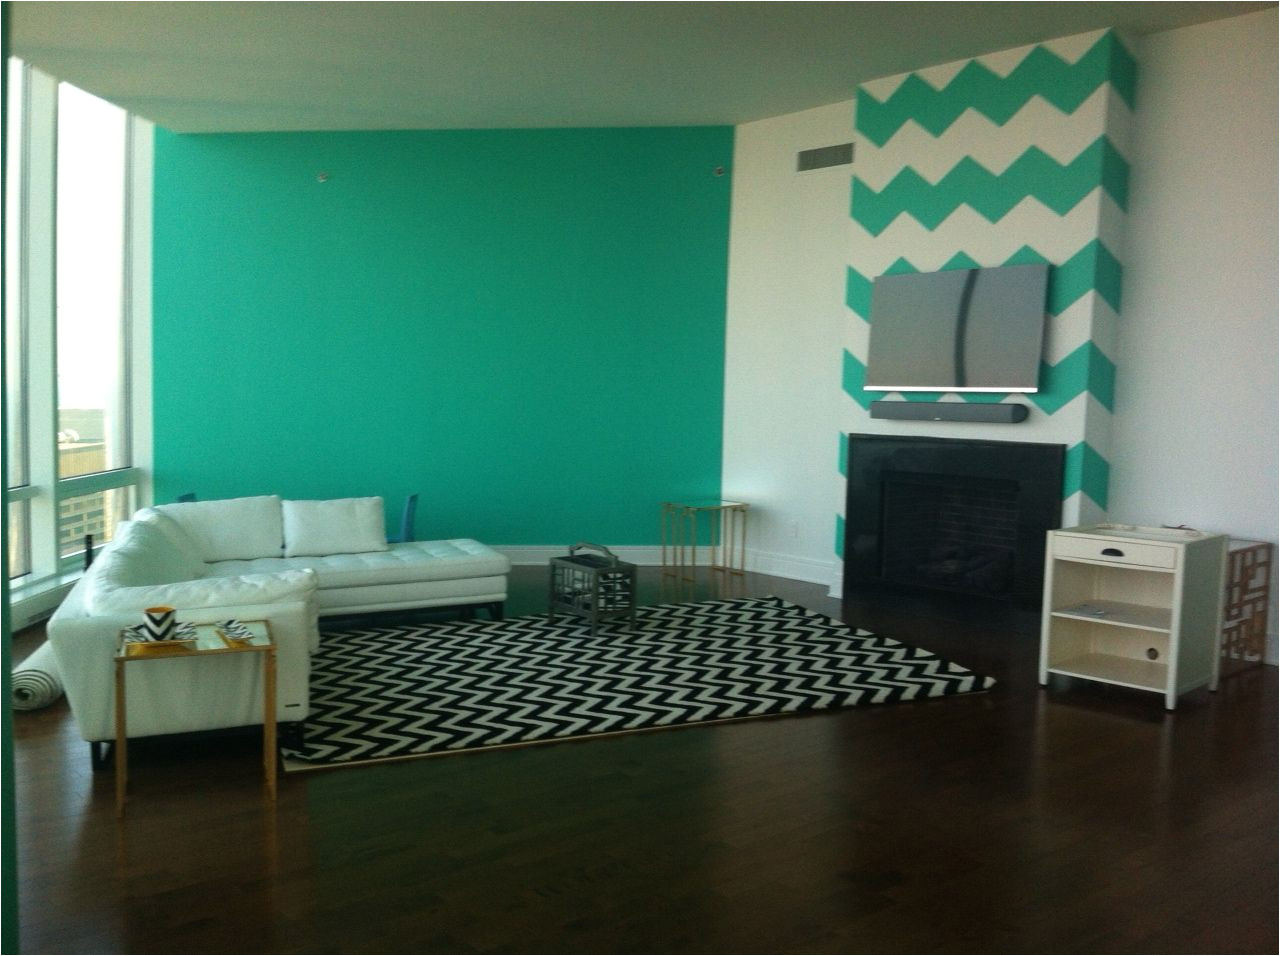 benjamin moore miami green is throughout my house i had the painter create chevron on the wall behind tv designed by chantel gia